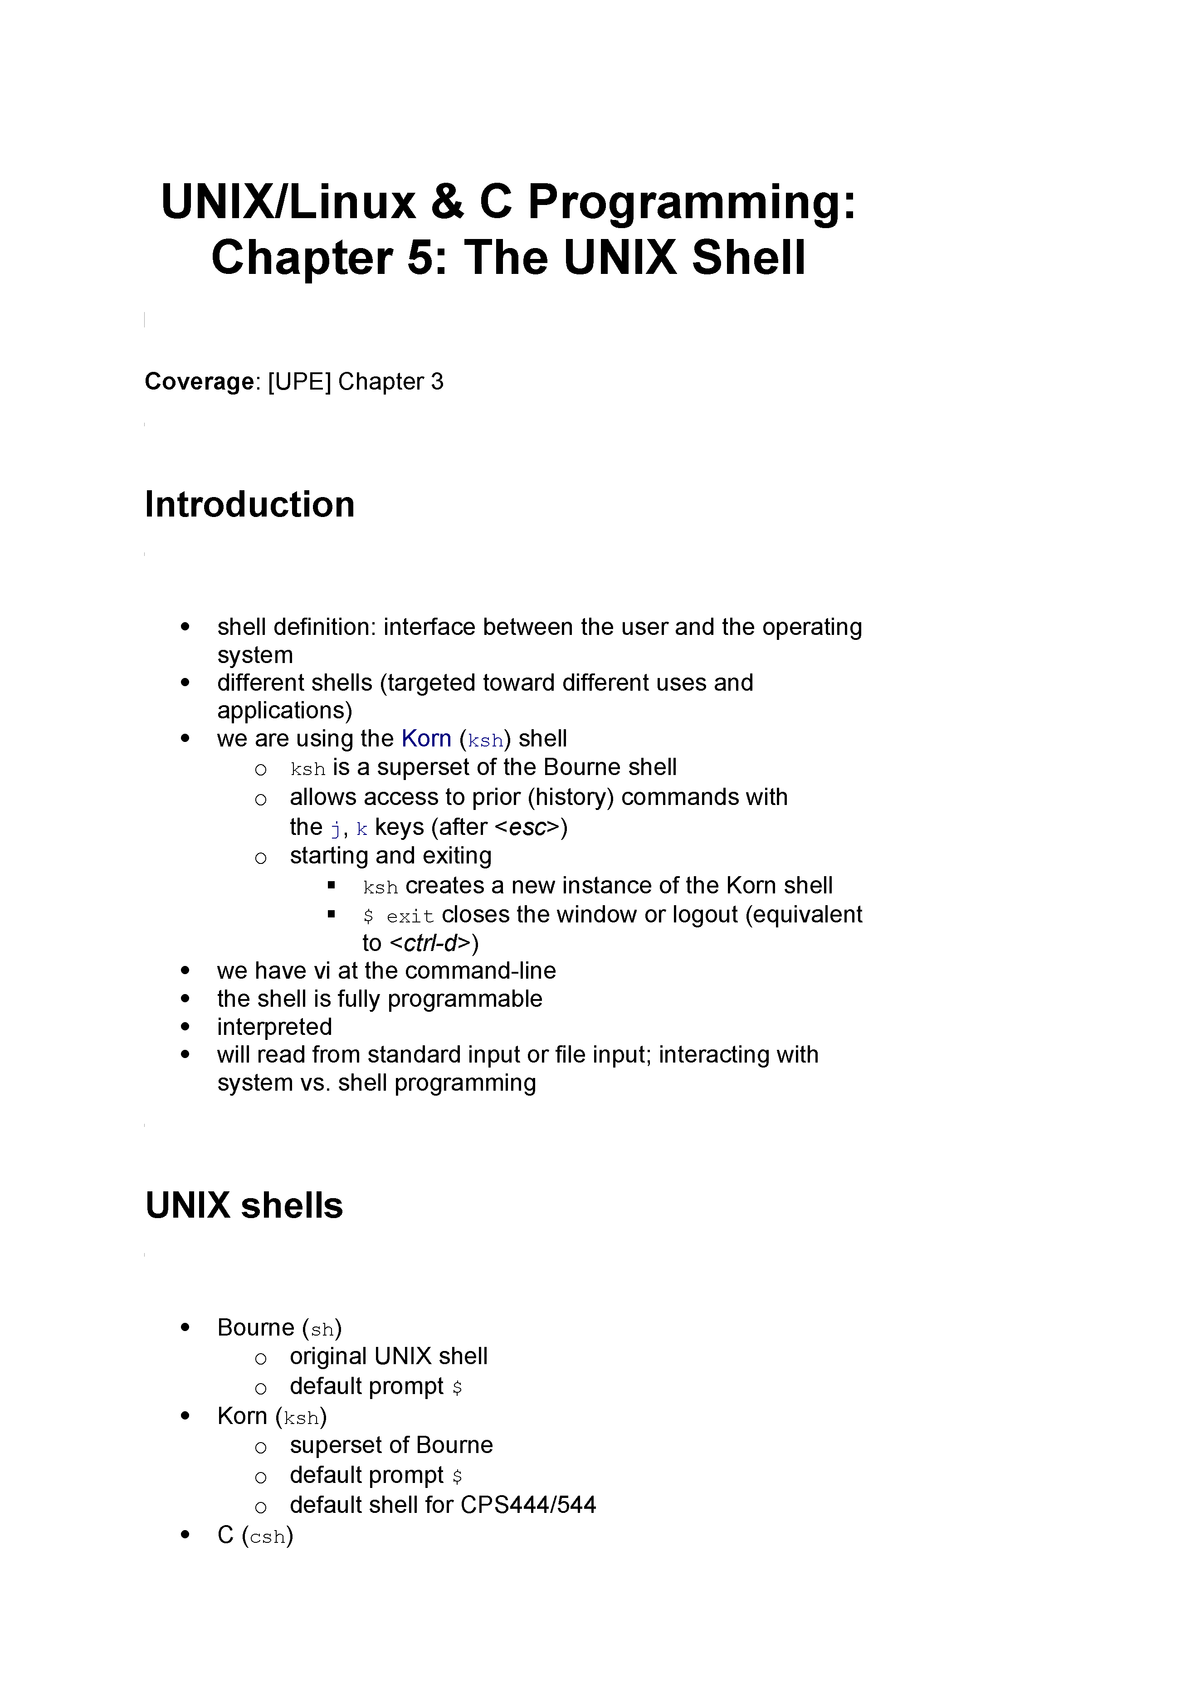 2014-2015 Lecture Notes 5 - The UNIX Shell - CPS 544: Systms